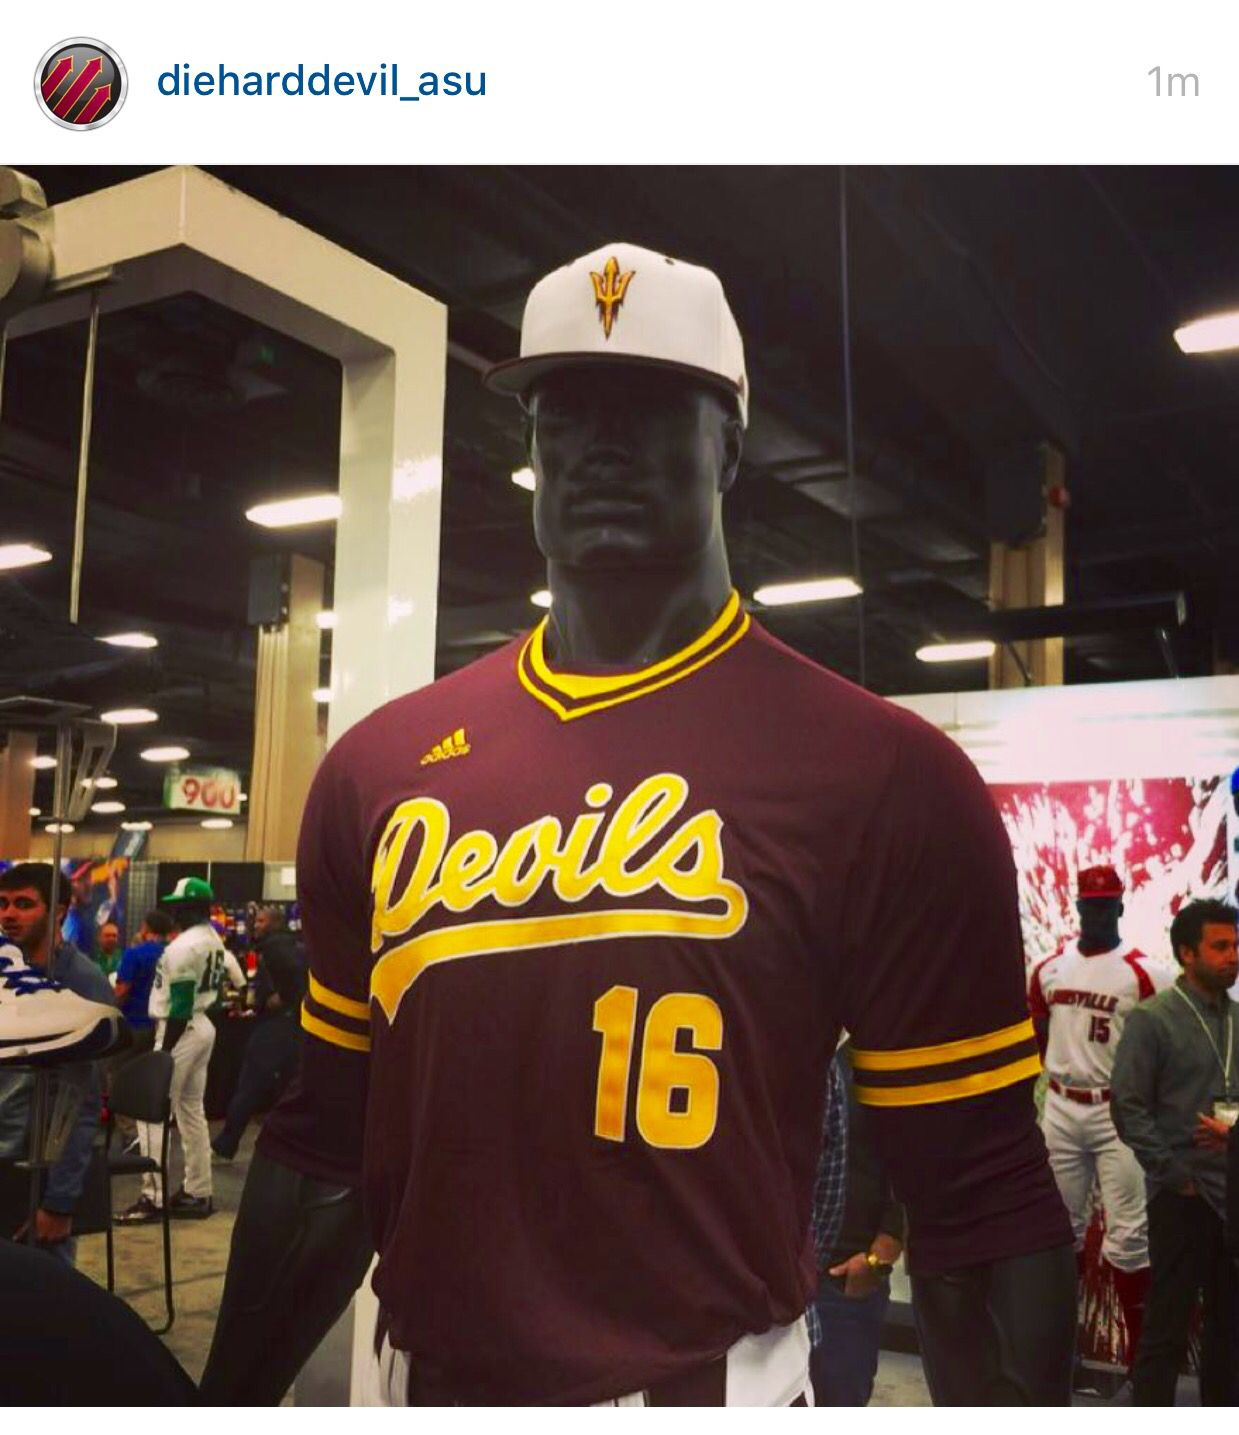 Some New Official Asu Baseball Jerseys From Adidas Note The White Hat Isn T Official They Will Use The Interlocking As A Arizona State University Hats Asu